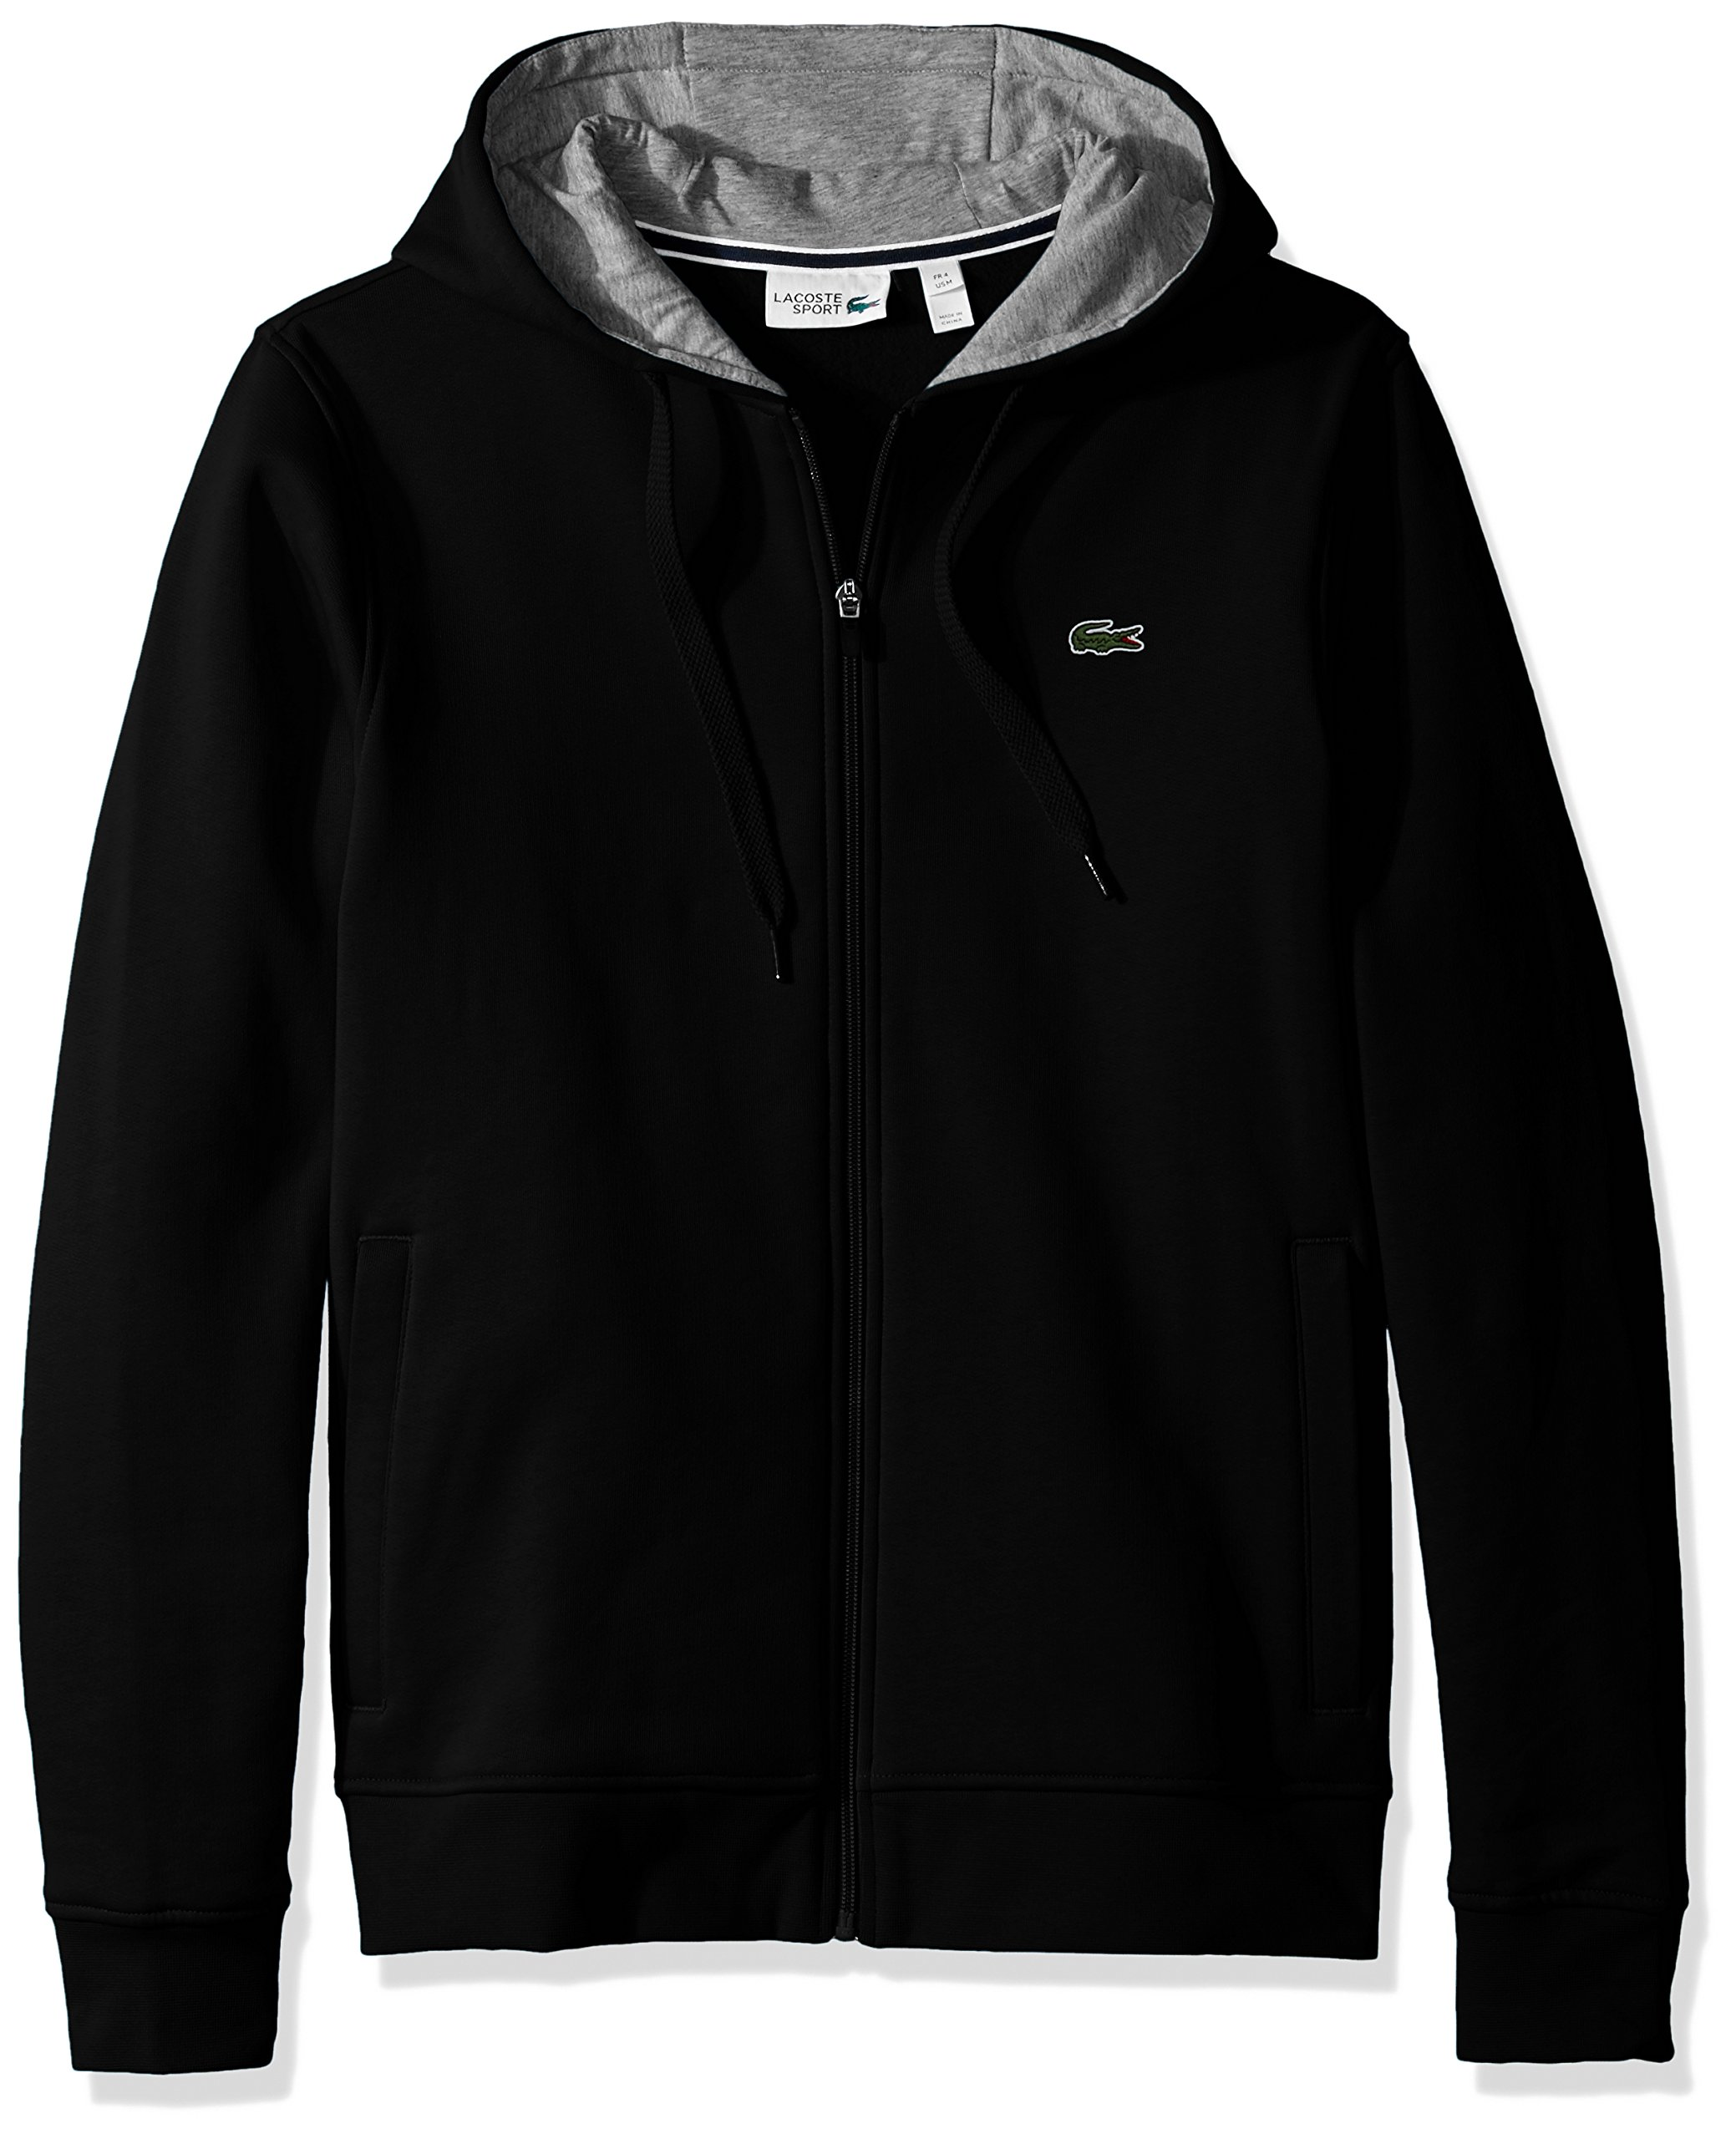 Lacoste Men's Full Zip Hoodie Fleece Sweatshirt, Black/Silver Chine, Medium